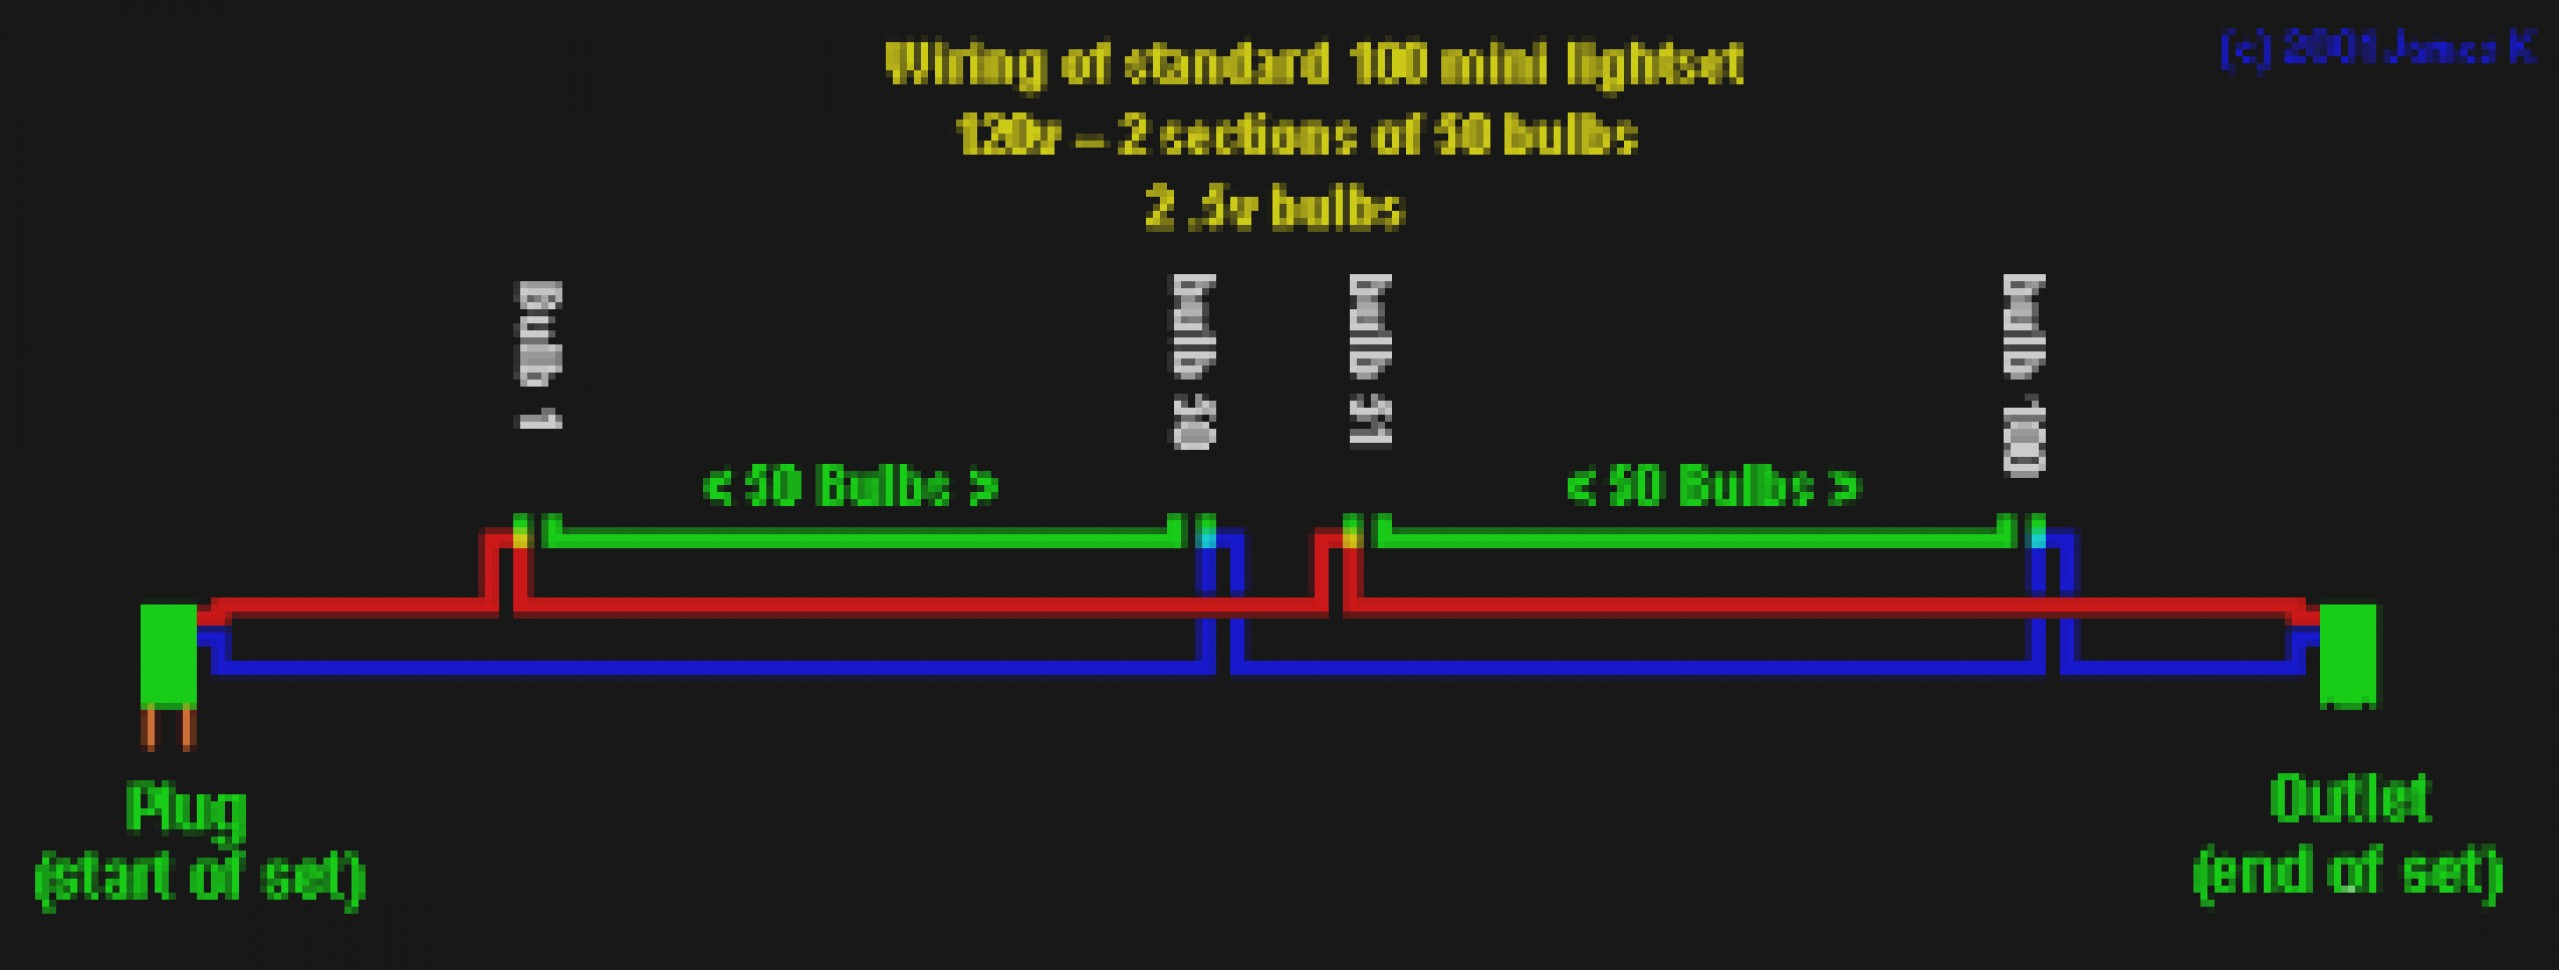 Basic Wiring Diagram For Christmas Lights - Wiring Diagrams Hubs - Christmas Lights Wiring Diagram